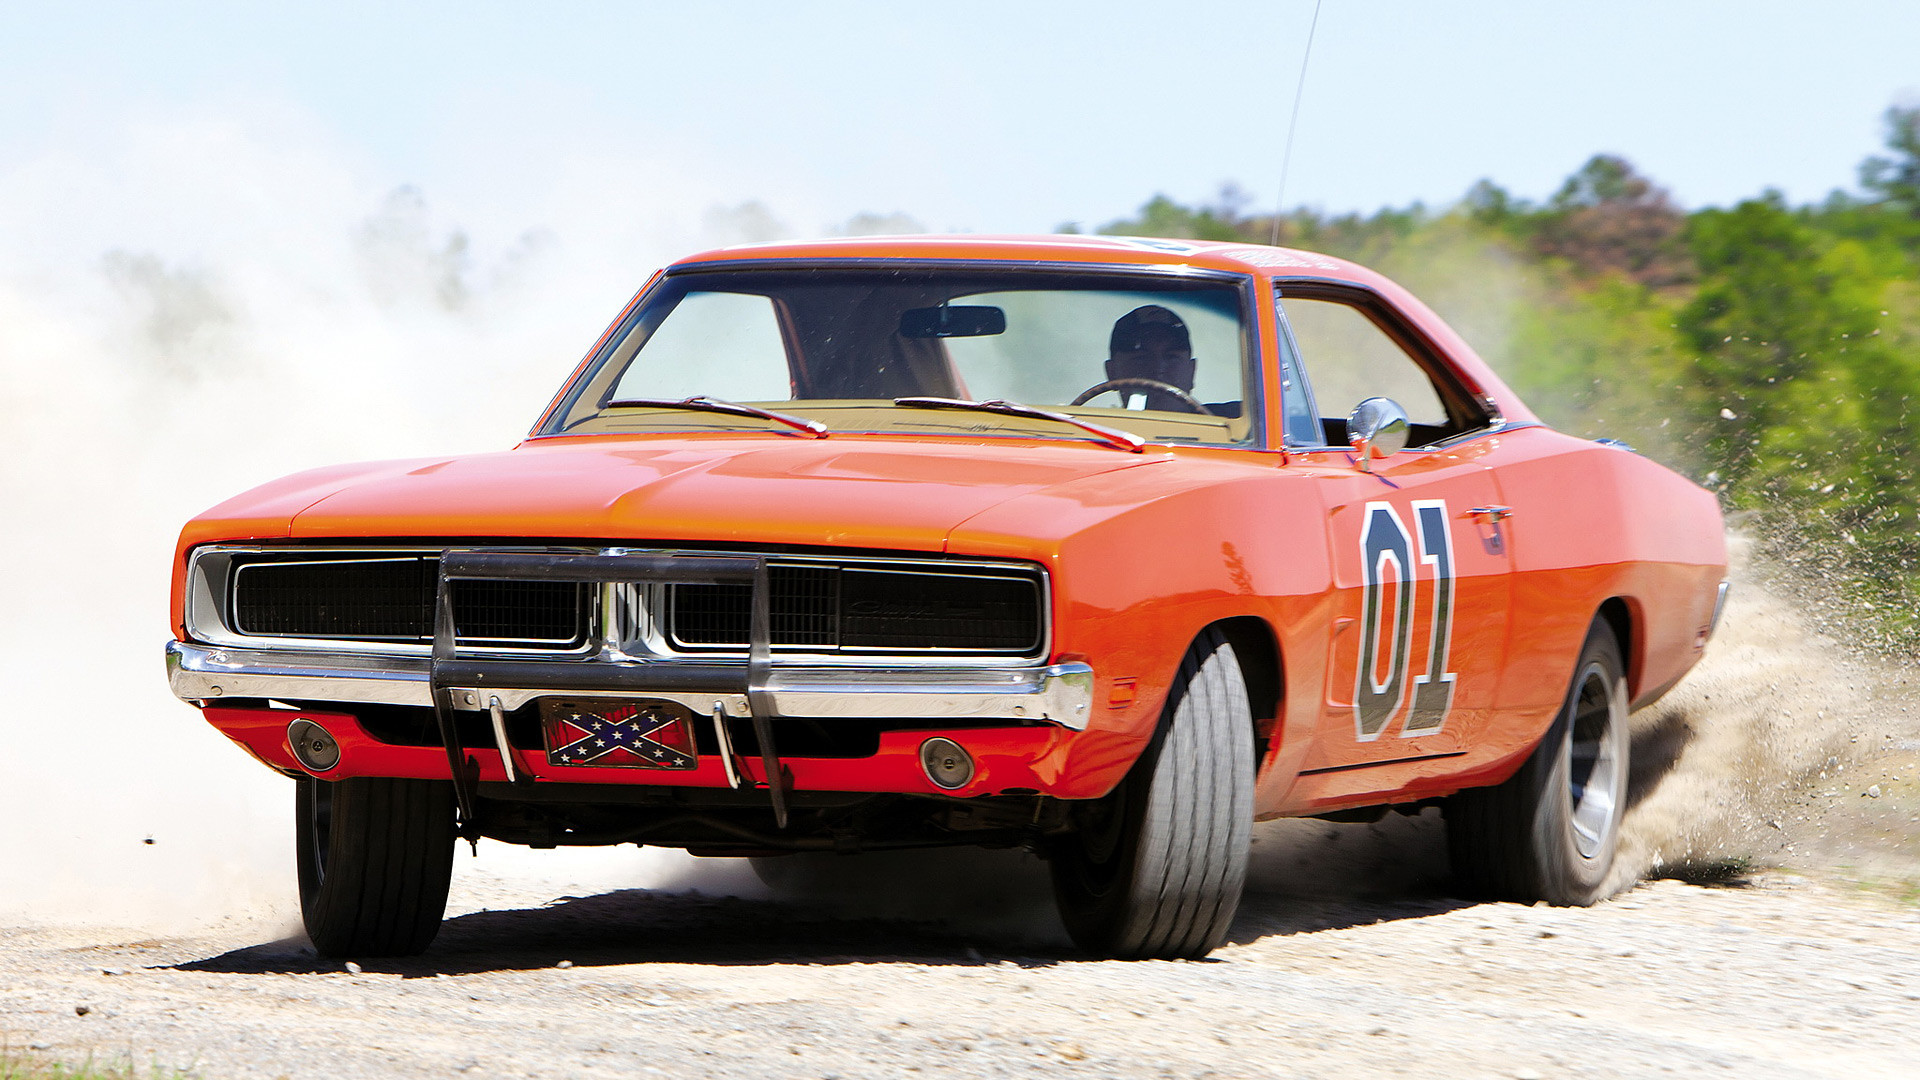 1920x1080 1969 Dodge Charger General Lee picture